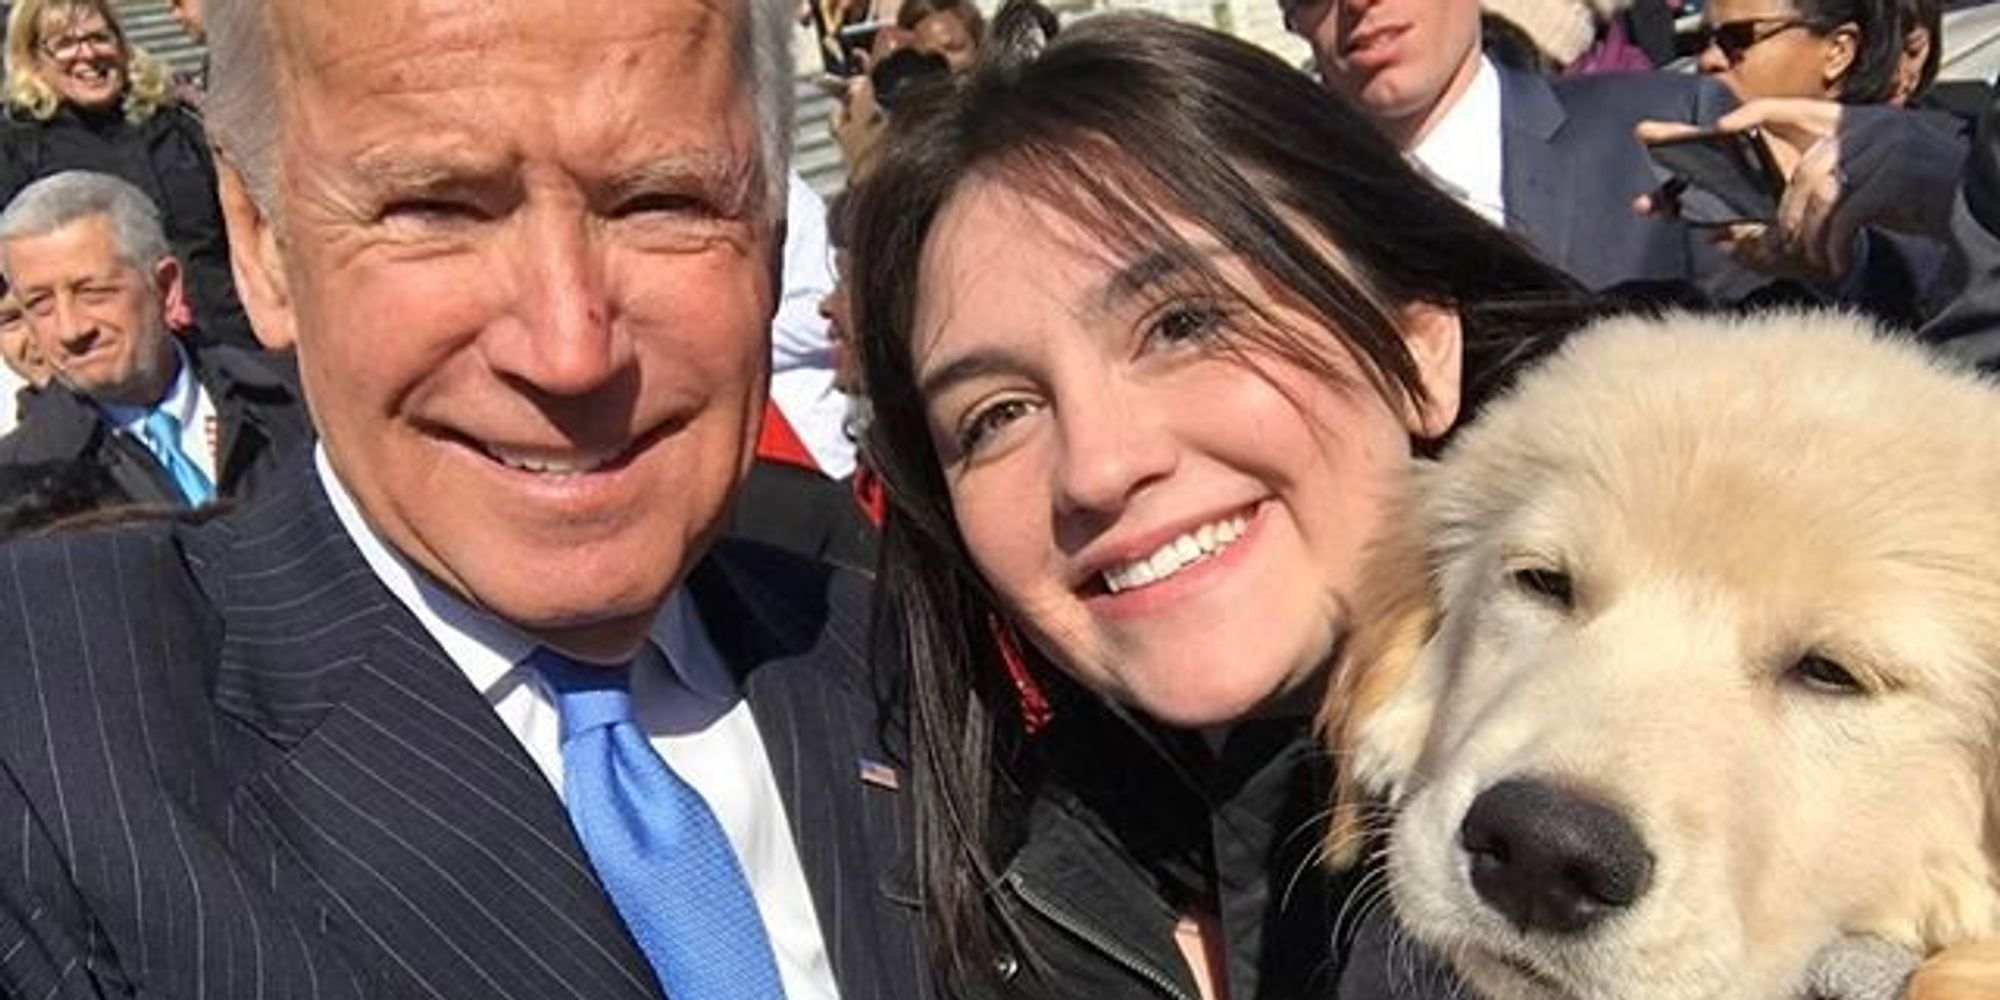 Joe Biden Meets Adorable Puppy Also Named Biden